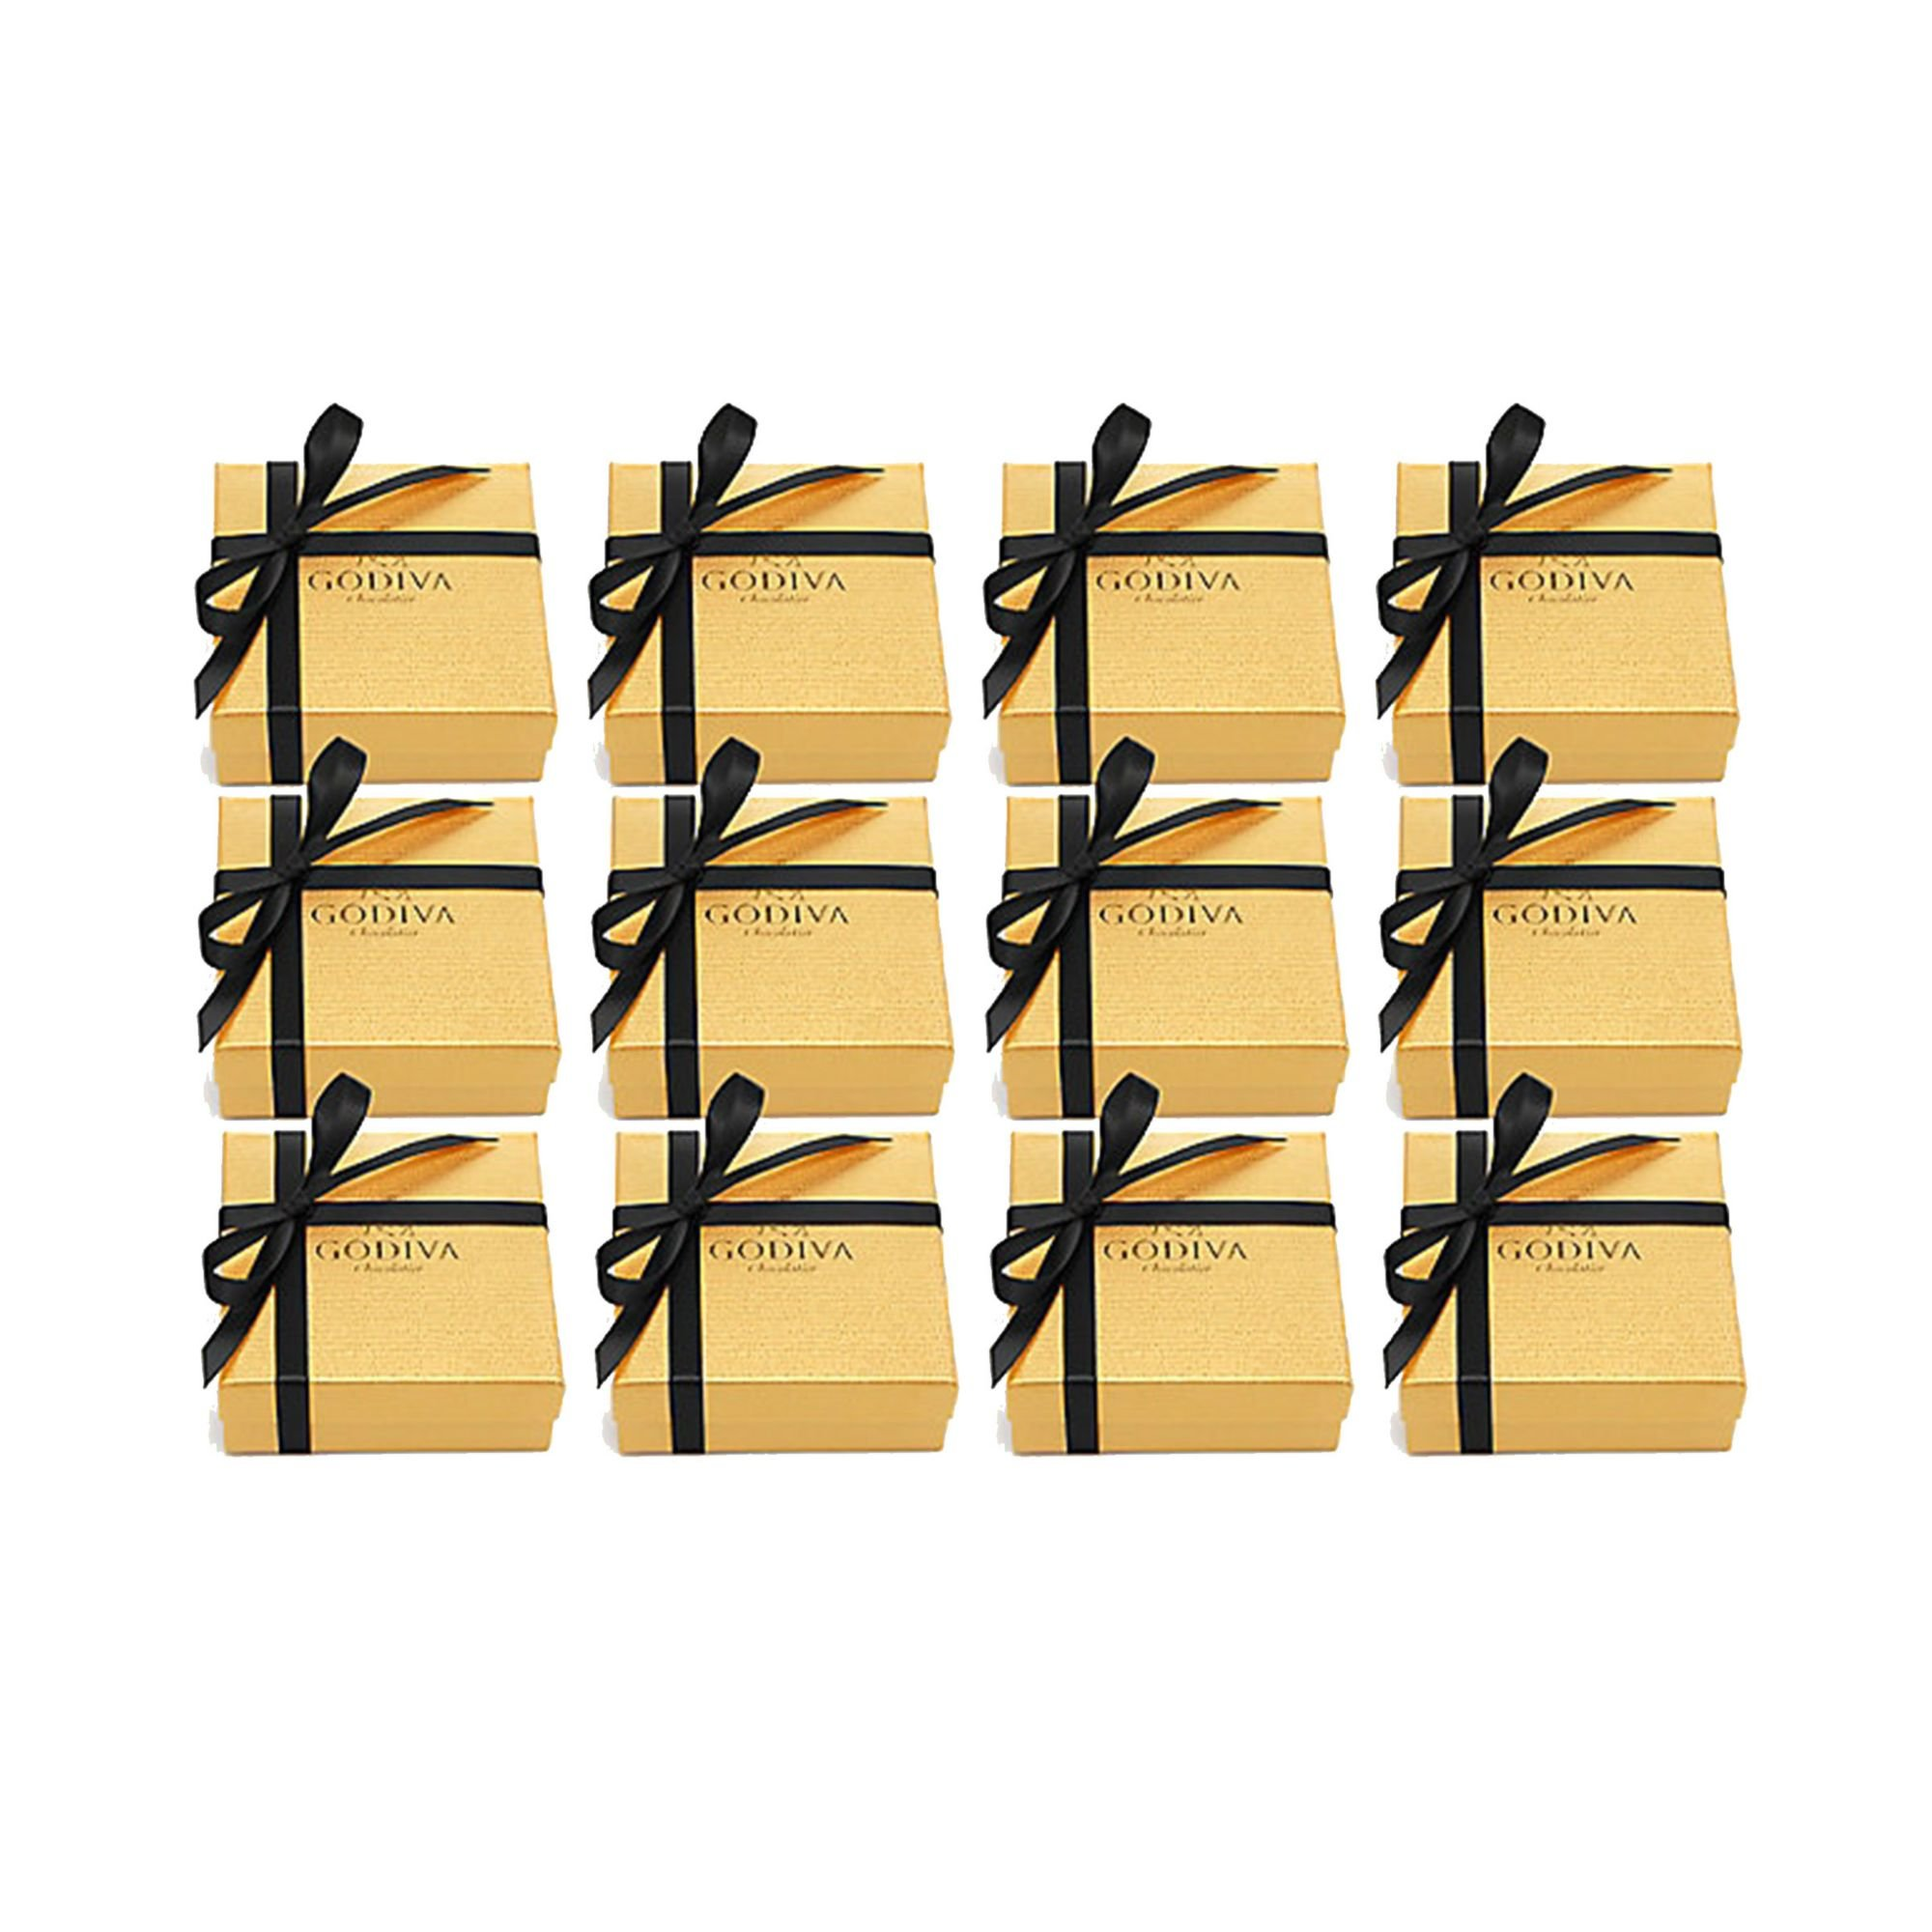 Godiva Chocolatier Chocolate Gold Favor, 4 Piece Gift Box, Black Ribbon, Assorted, Great for Stocking Stuffers, Set of 12 by GODIVA Chocolatier